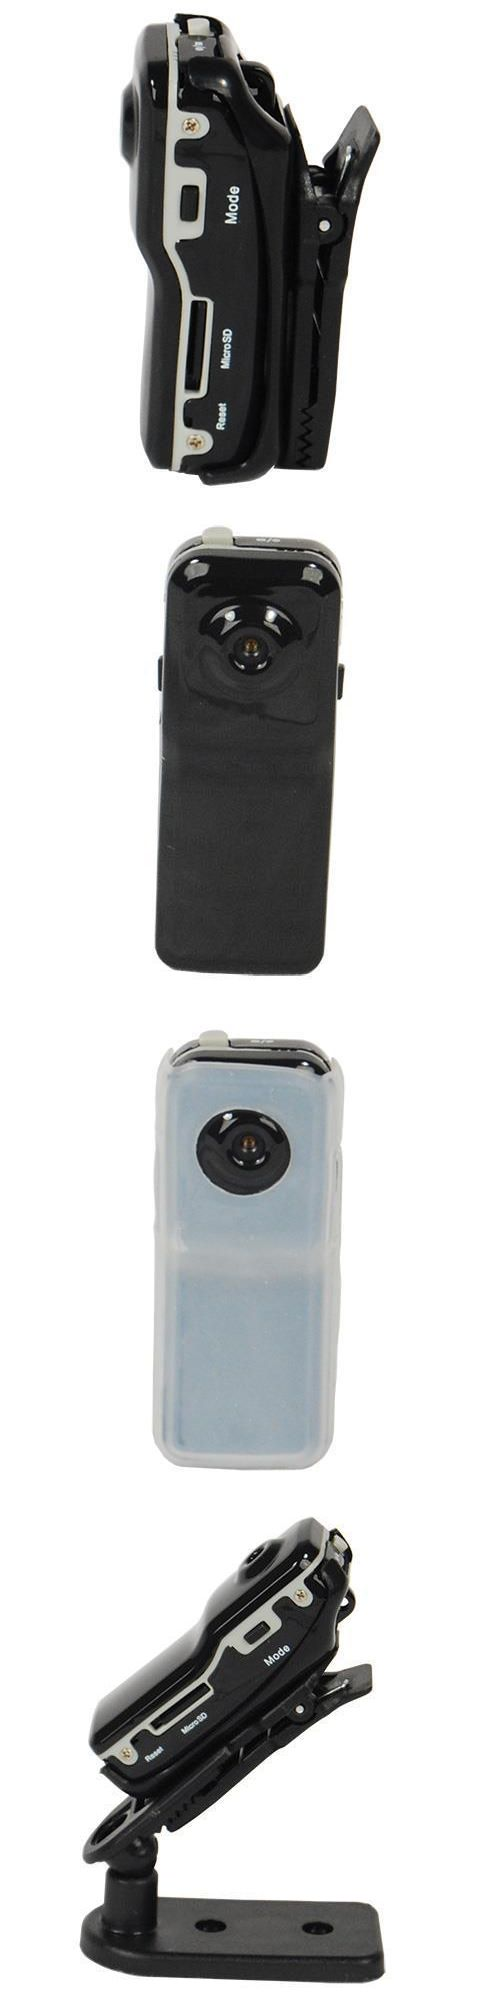 Surveillance Gadgets: Versatile Multi-Use 16Gb Mini Hidden Spy Camera With Built-In Dvr And 2 Mounts -> BUY IT NOW ONLY: $41.99 on eBay!